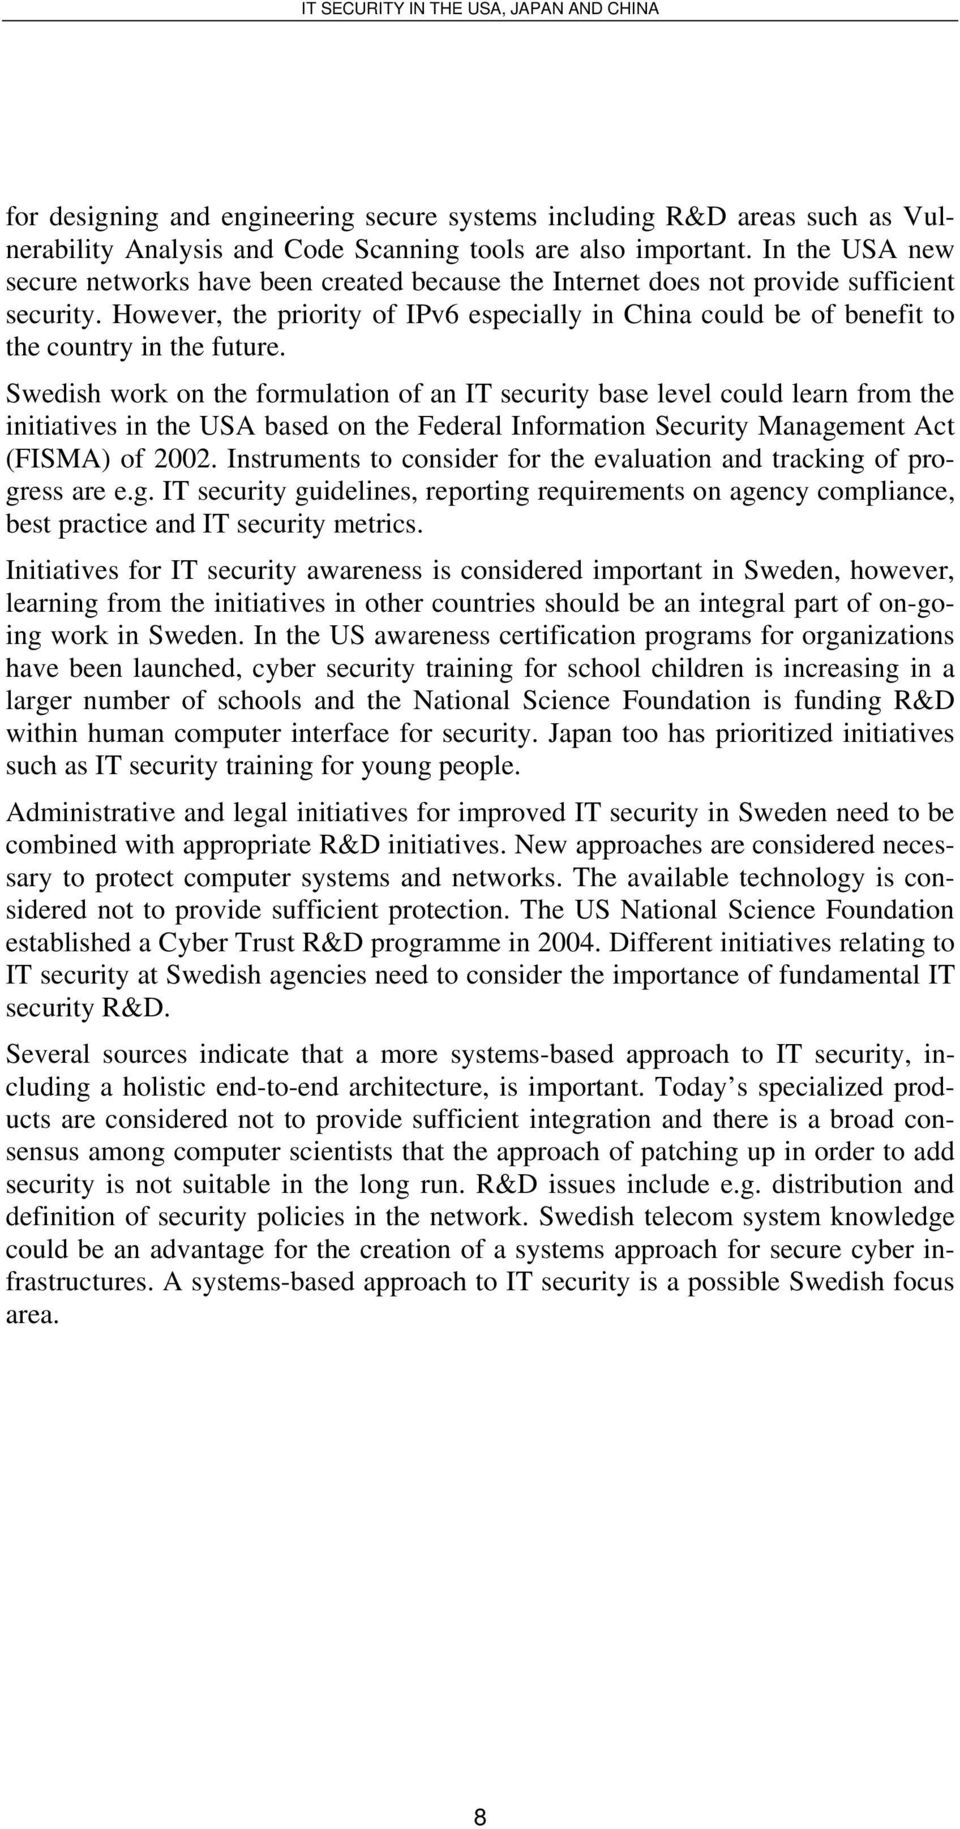 However, the priority of IPv6 especially in China could be of benefit to the country in the future.